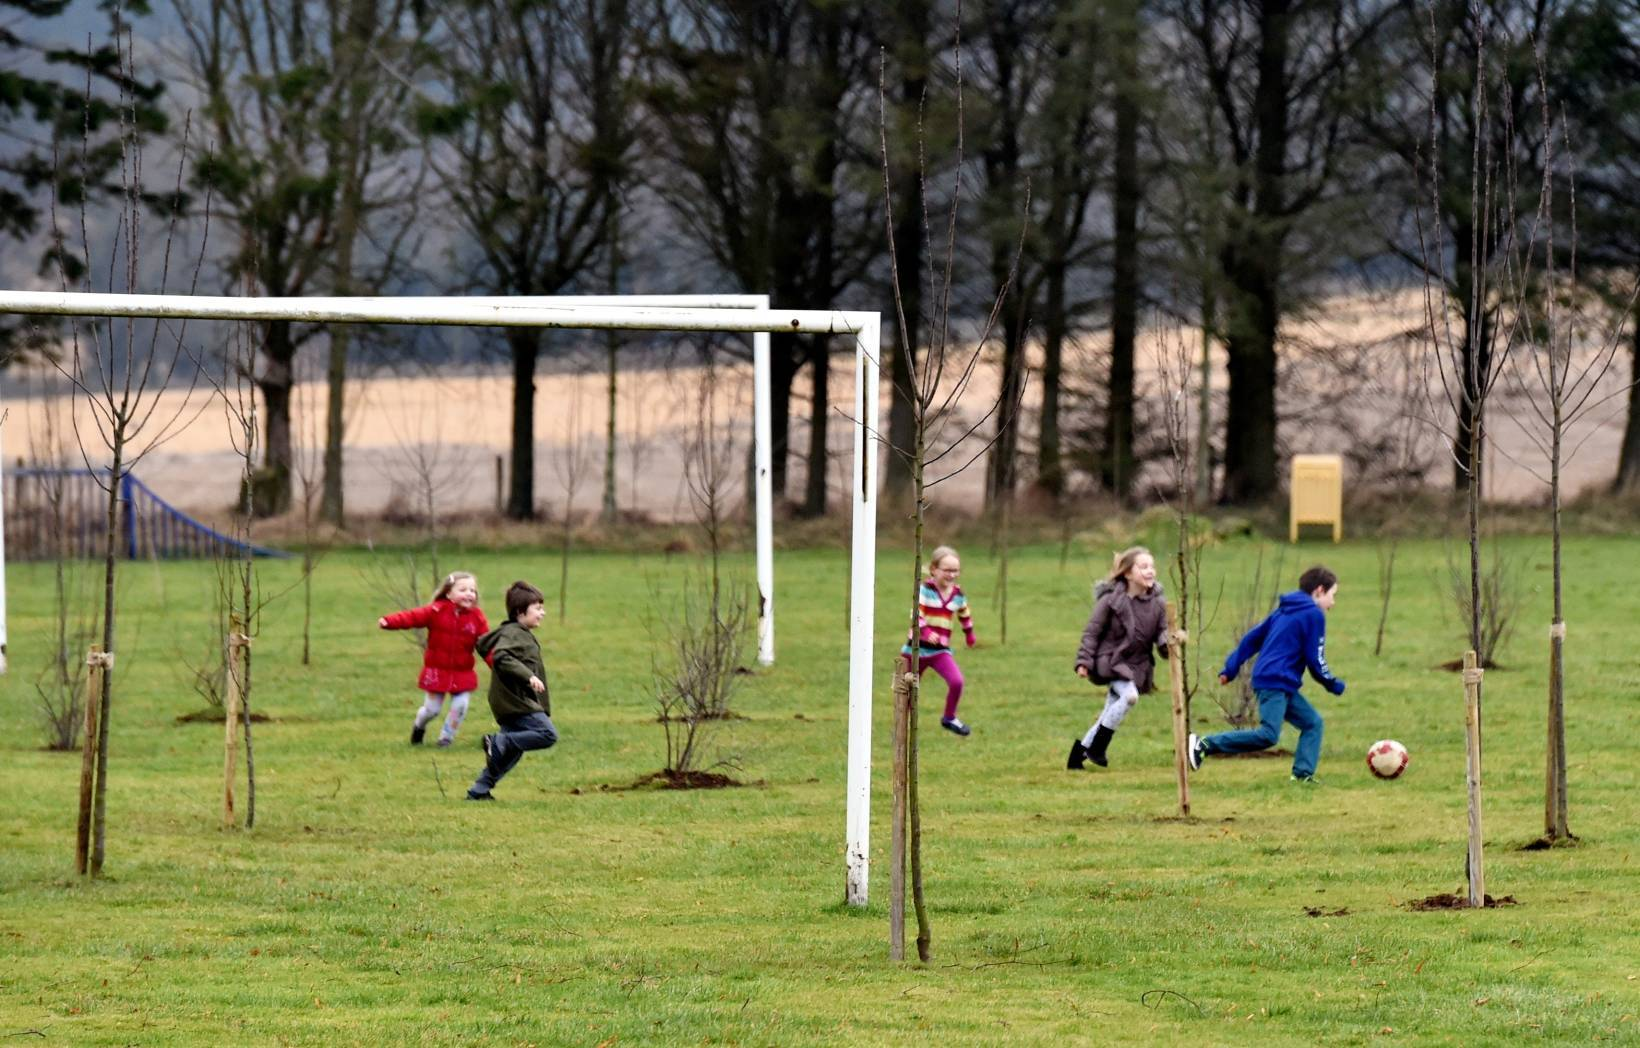 Council workers have planted lots of trees in the middle of a children's football pitch at Logie Durno